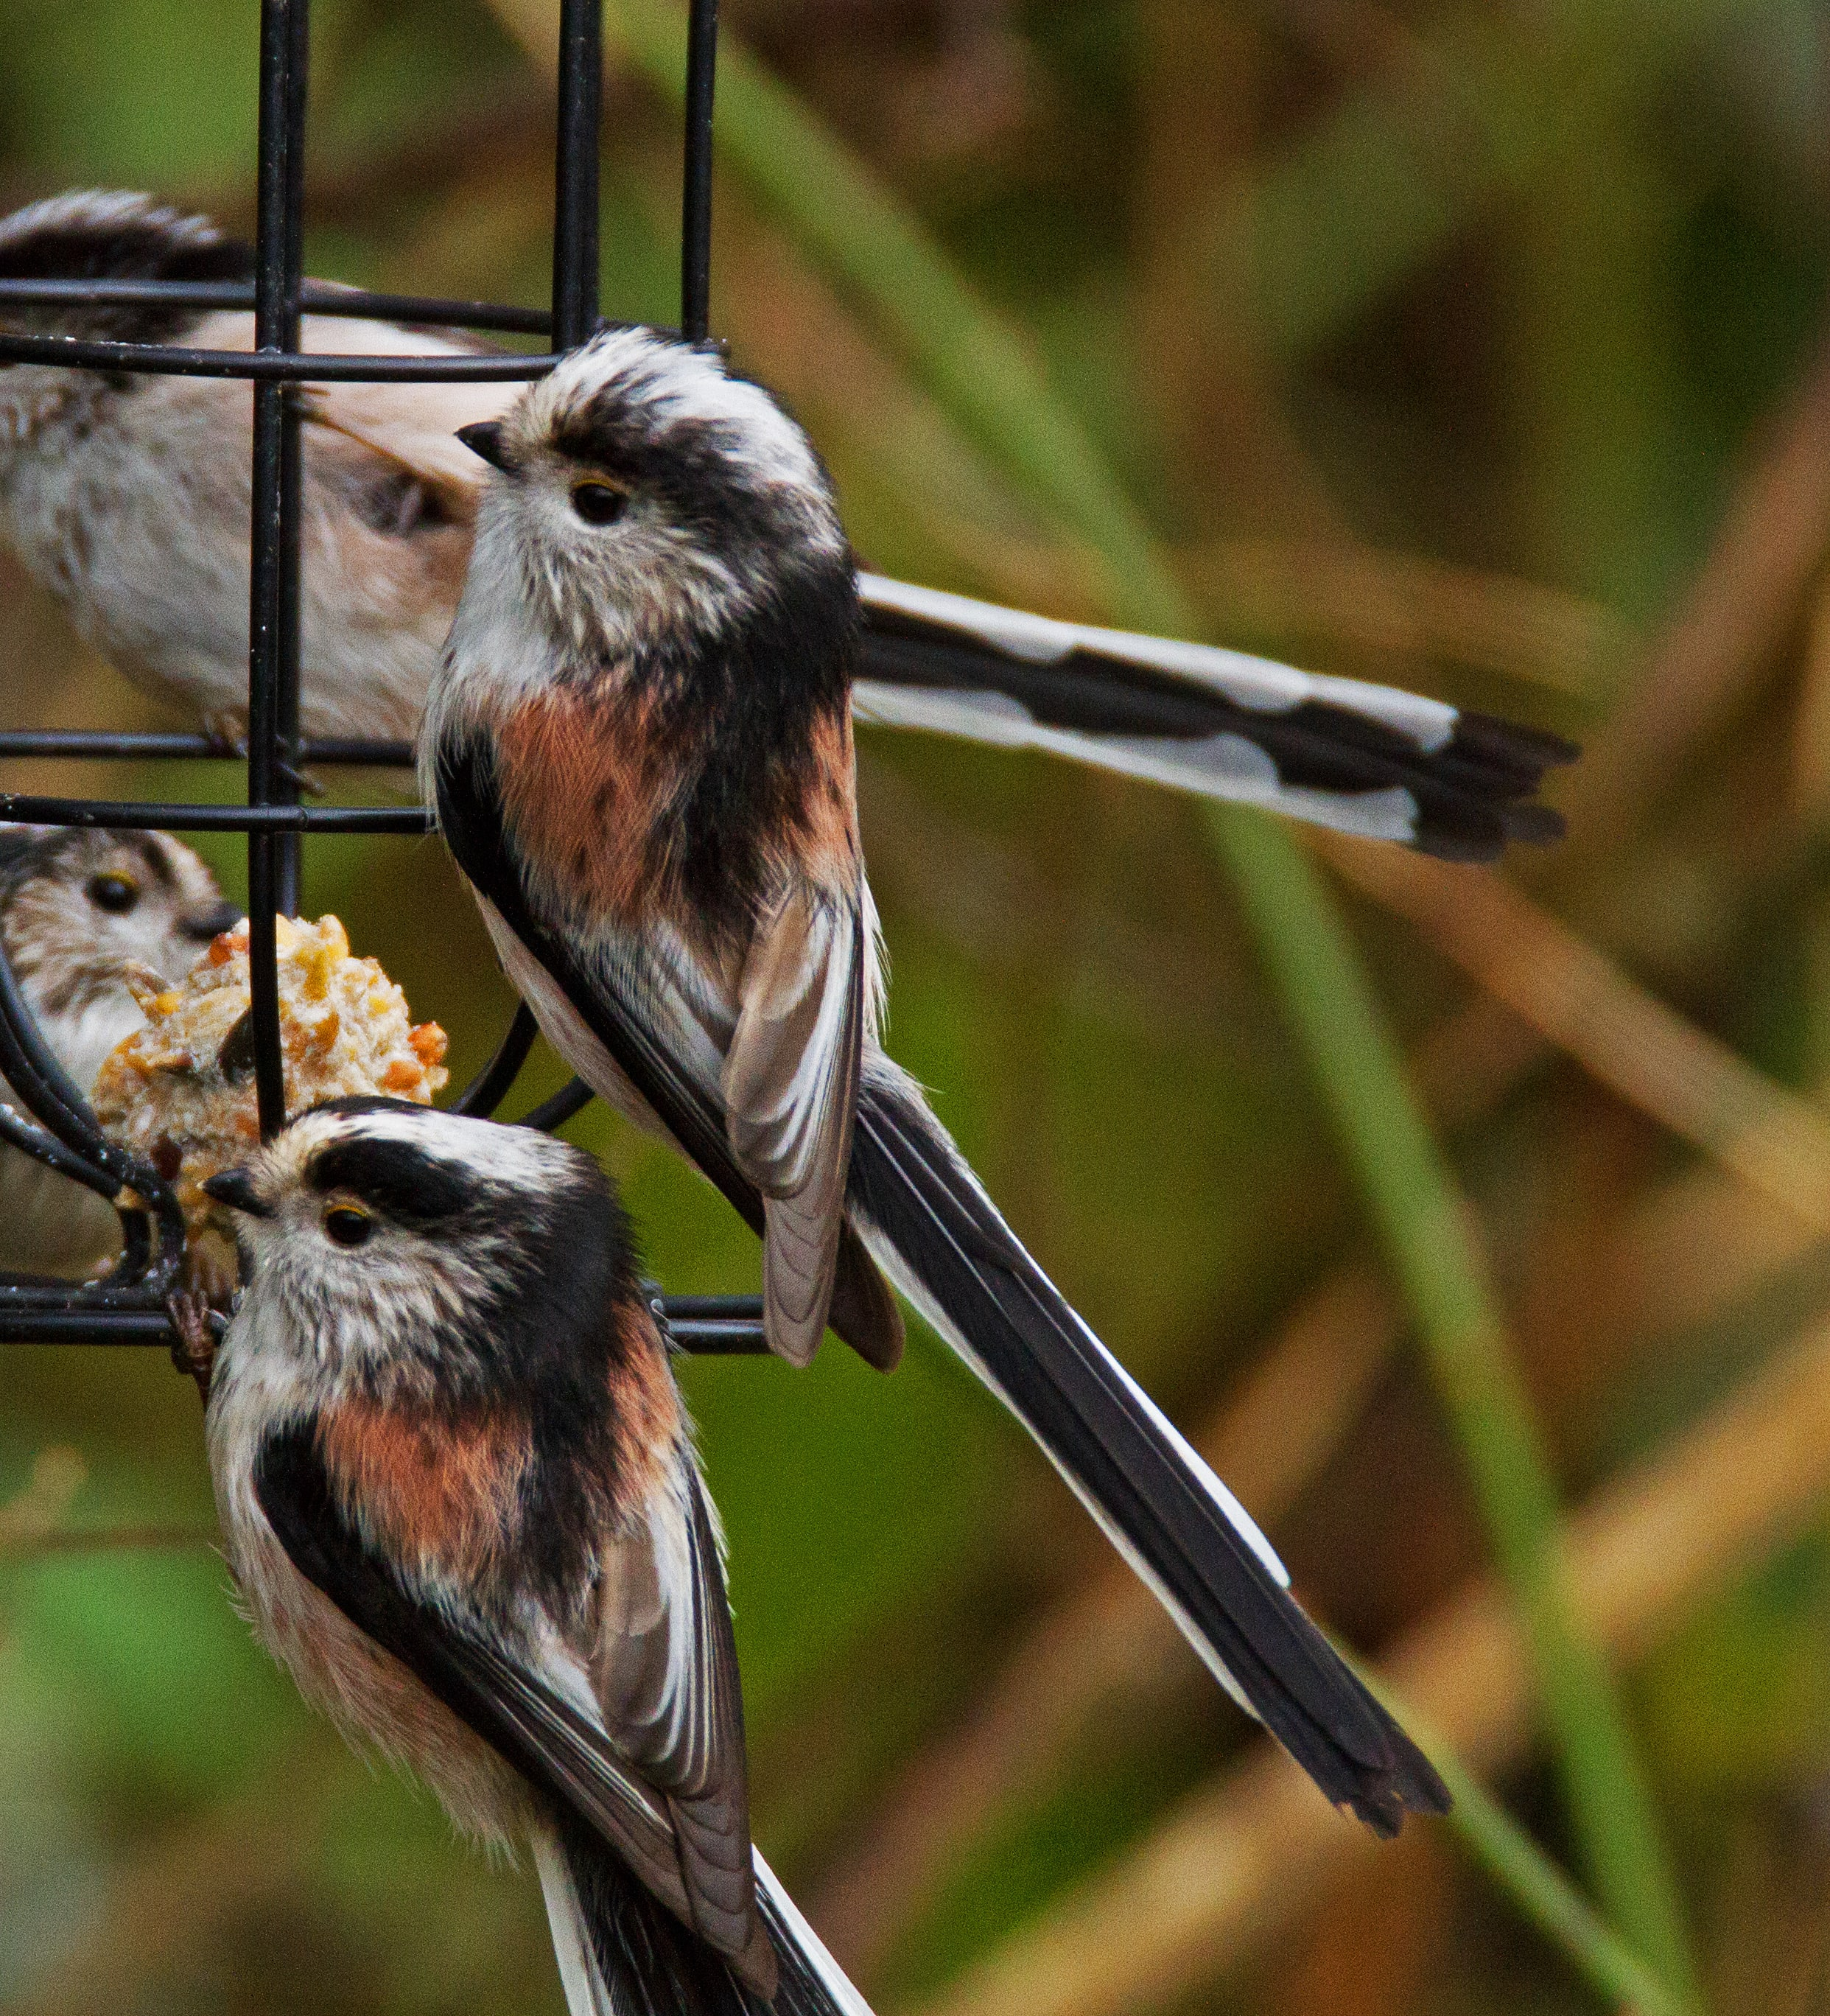 Long-tailed tits on the loose! - Wise Owl Blog by Love